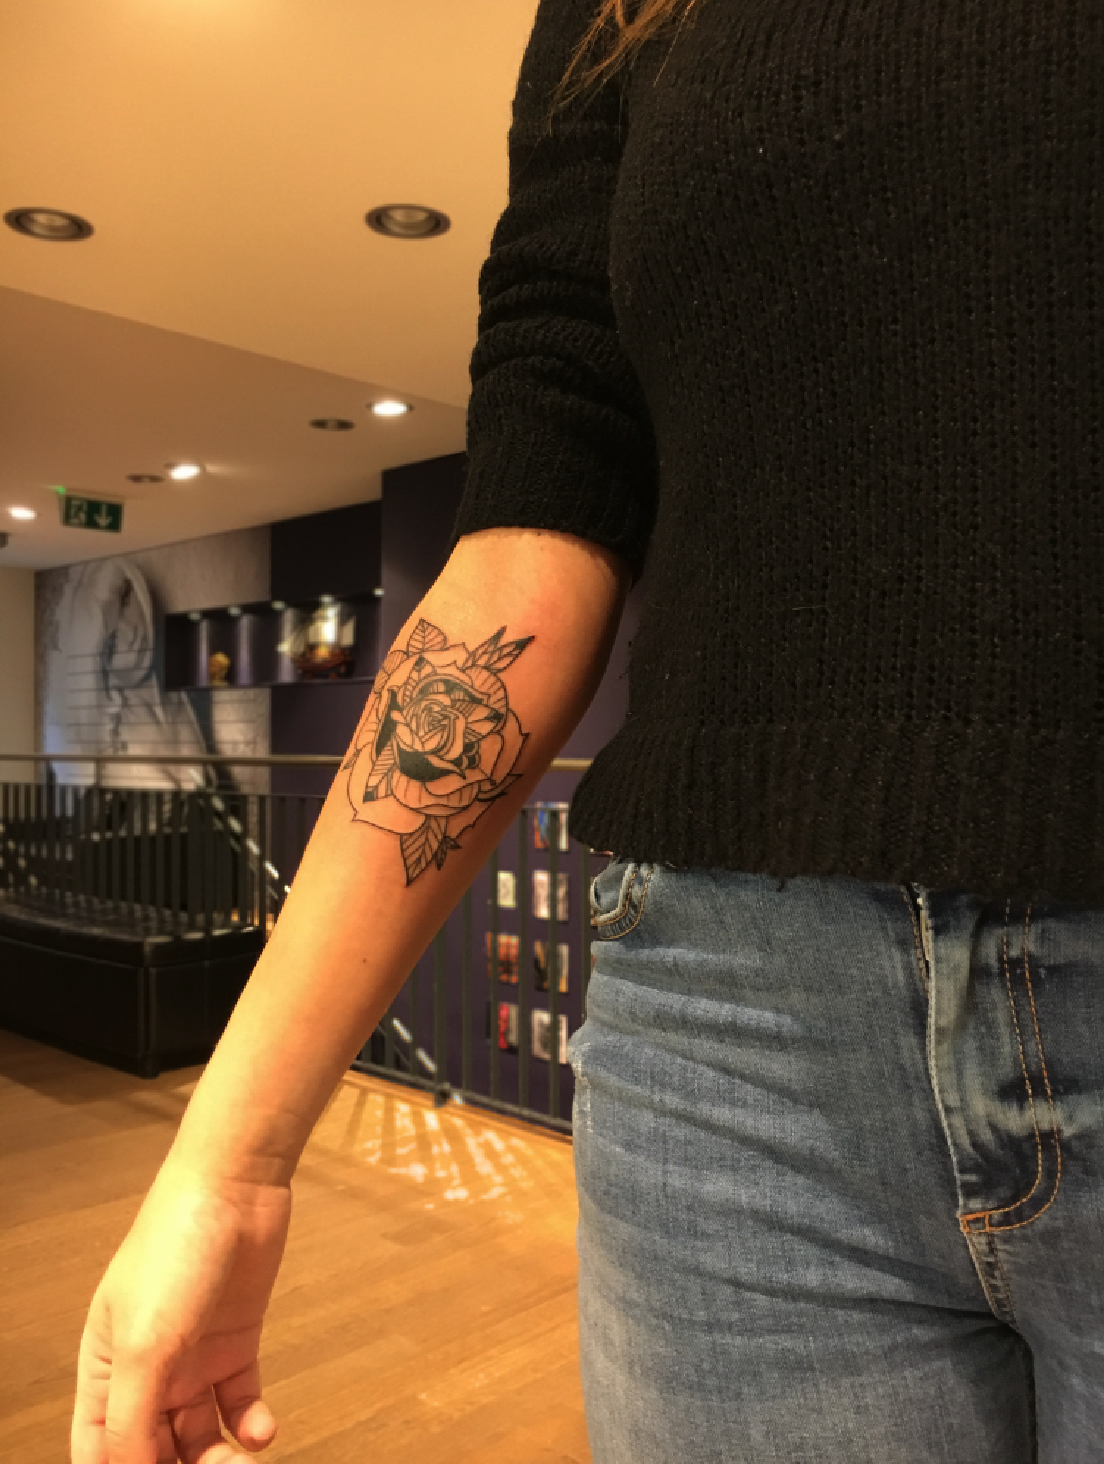 piink-tattoo-piercing-ryan-tattoostudio-basel